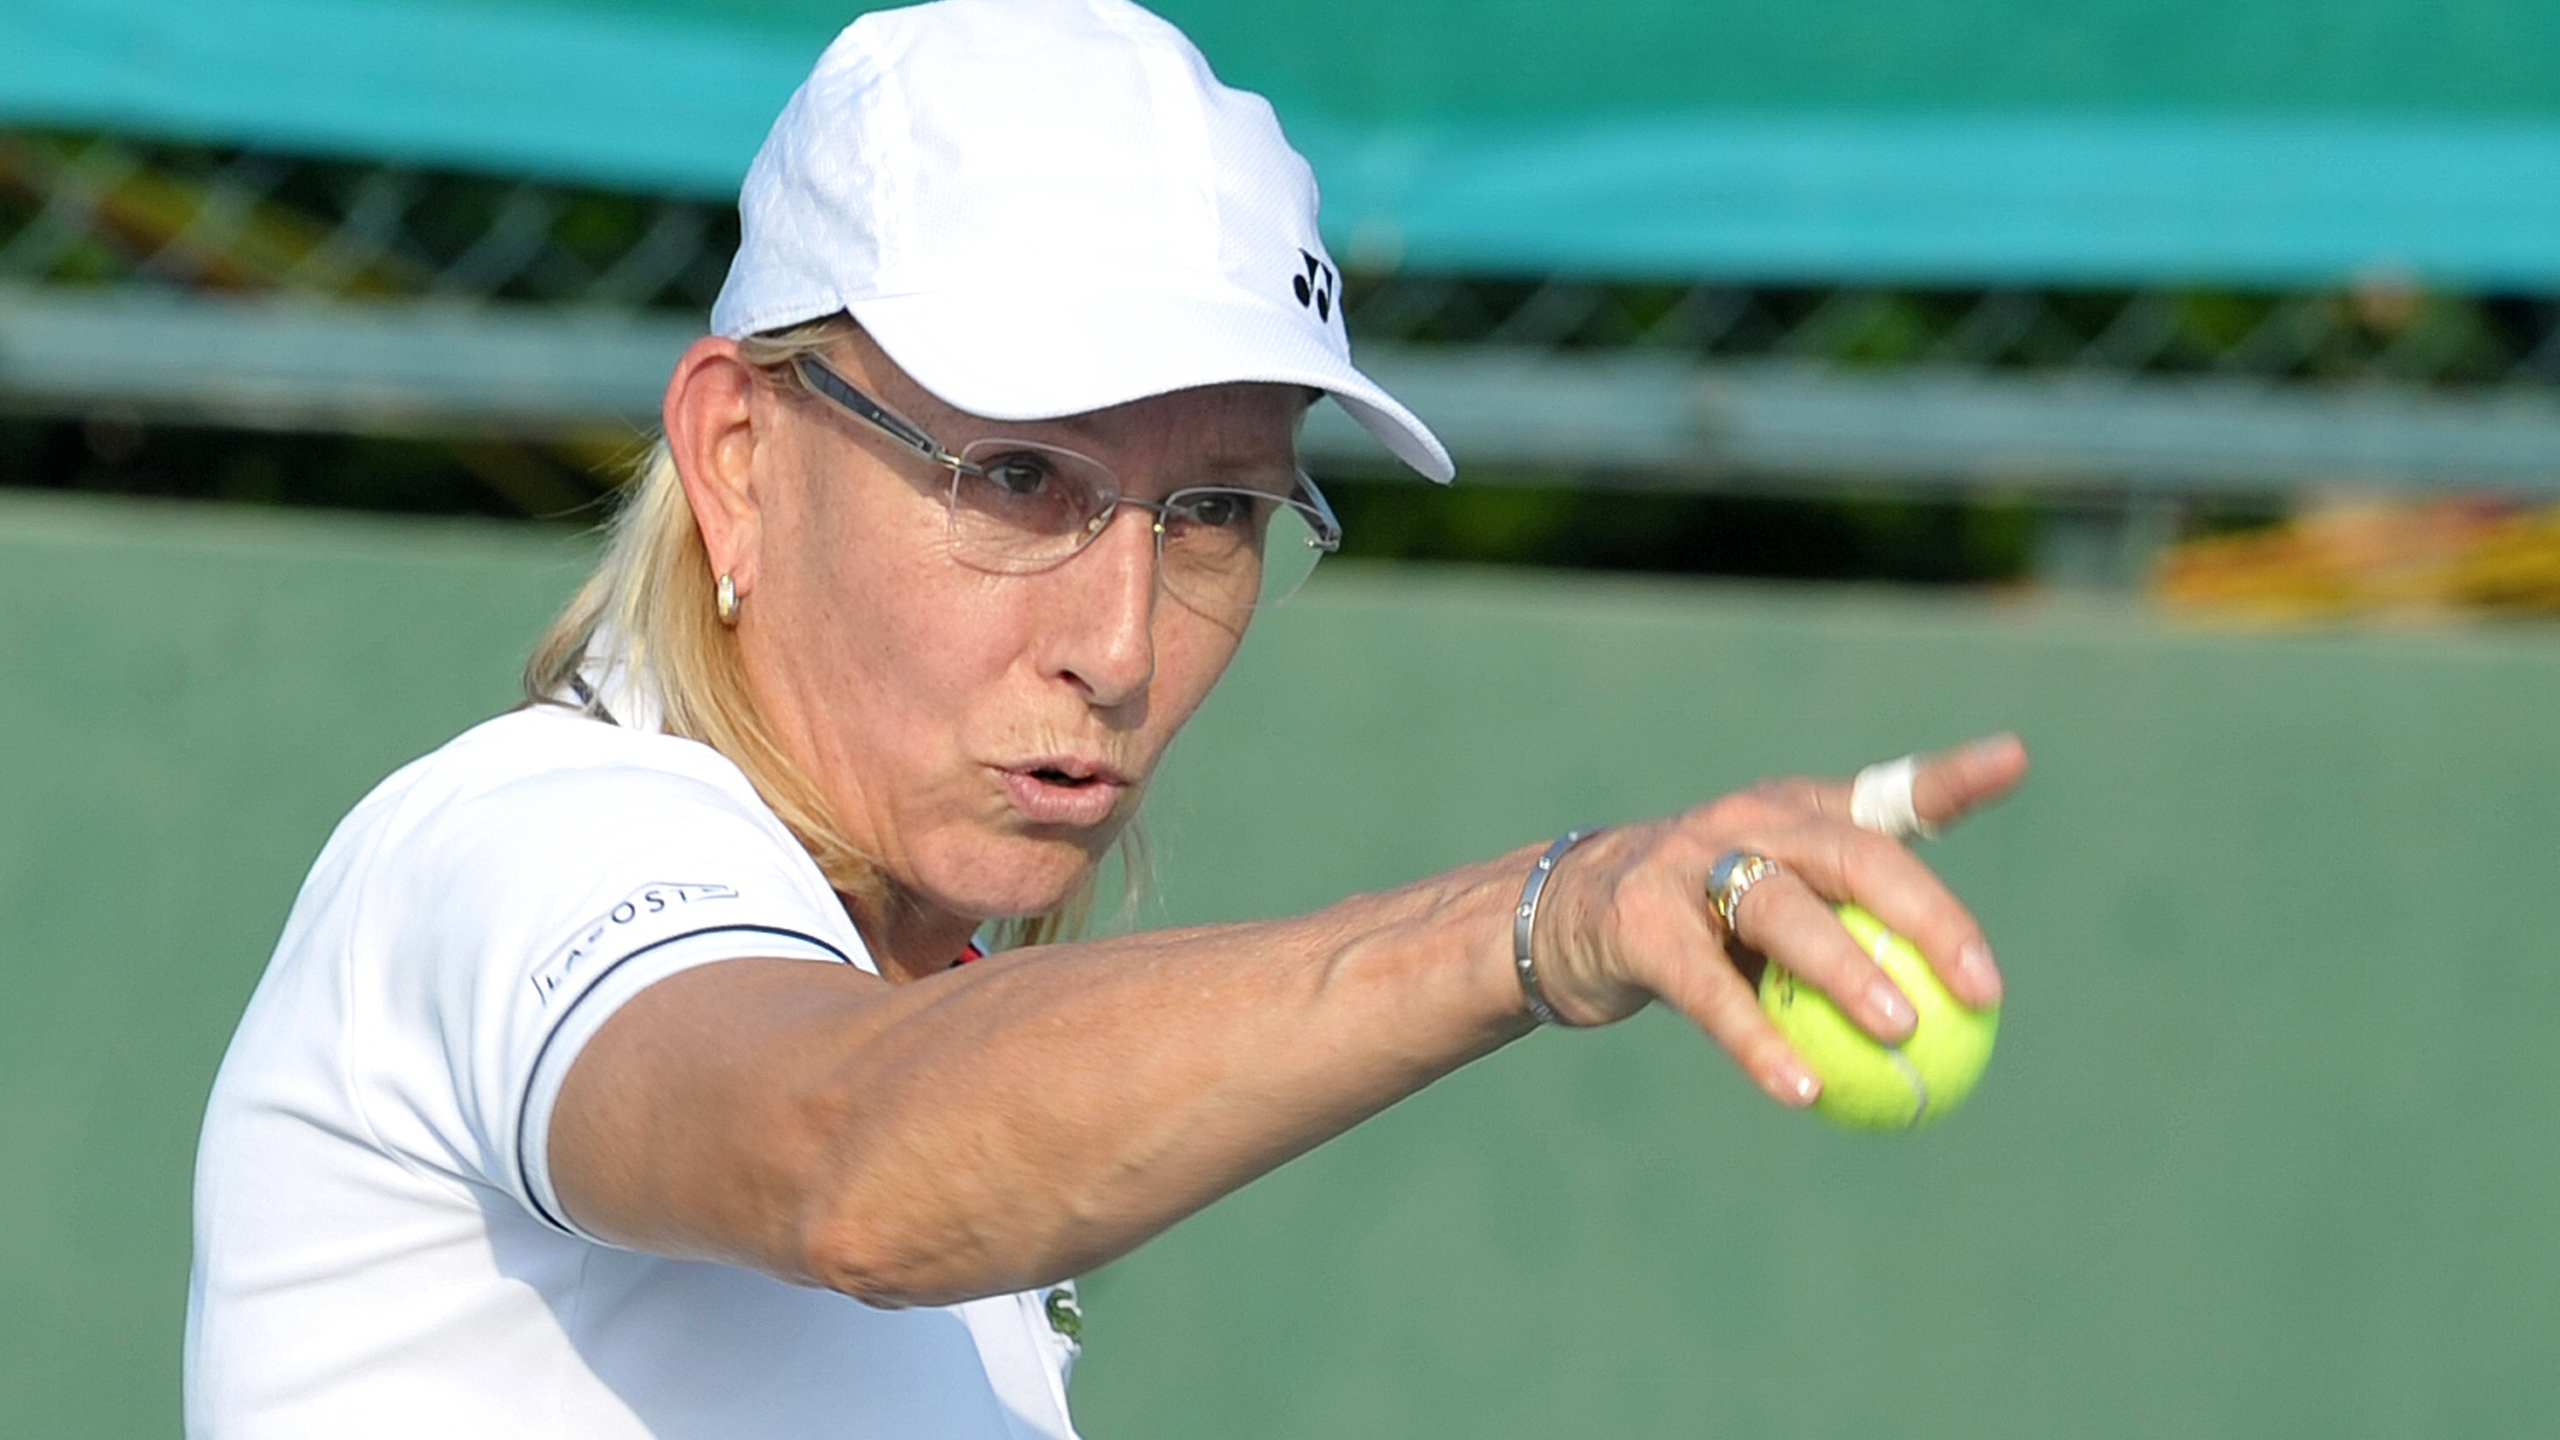 Martina Navratilova takes part in a mixed doubles exhibition match during the Tennis Masters Hyderabad 2015 at the Sania Mirza Tennis Academy (SMTA) in Hyderabad on November 26, 2015. (Credit: NOAH SEELAM/AFP/Getty Images)